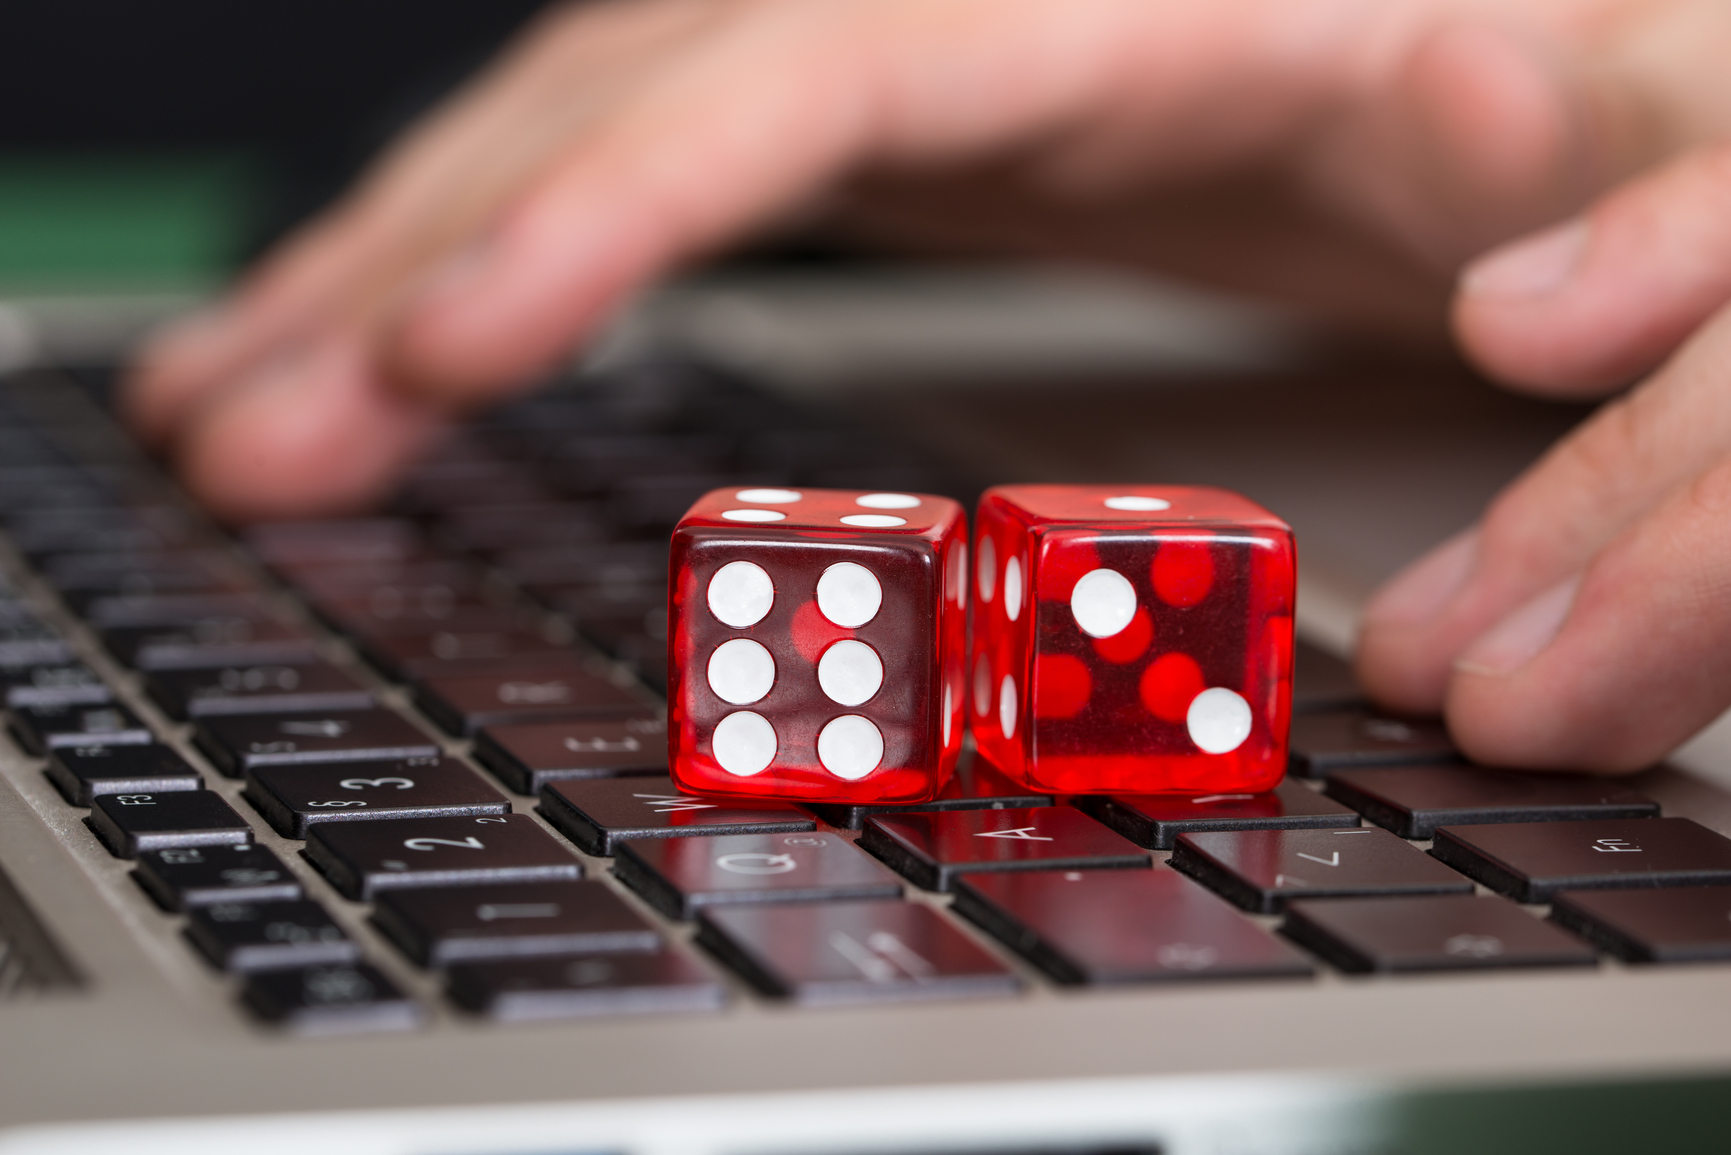 Gamble game online casino rules craps